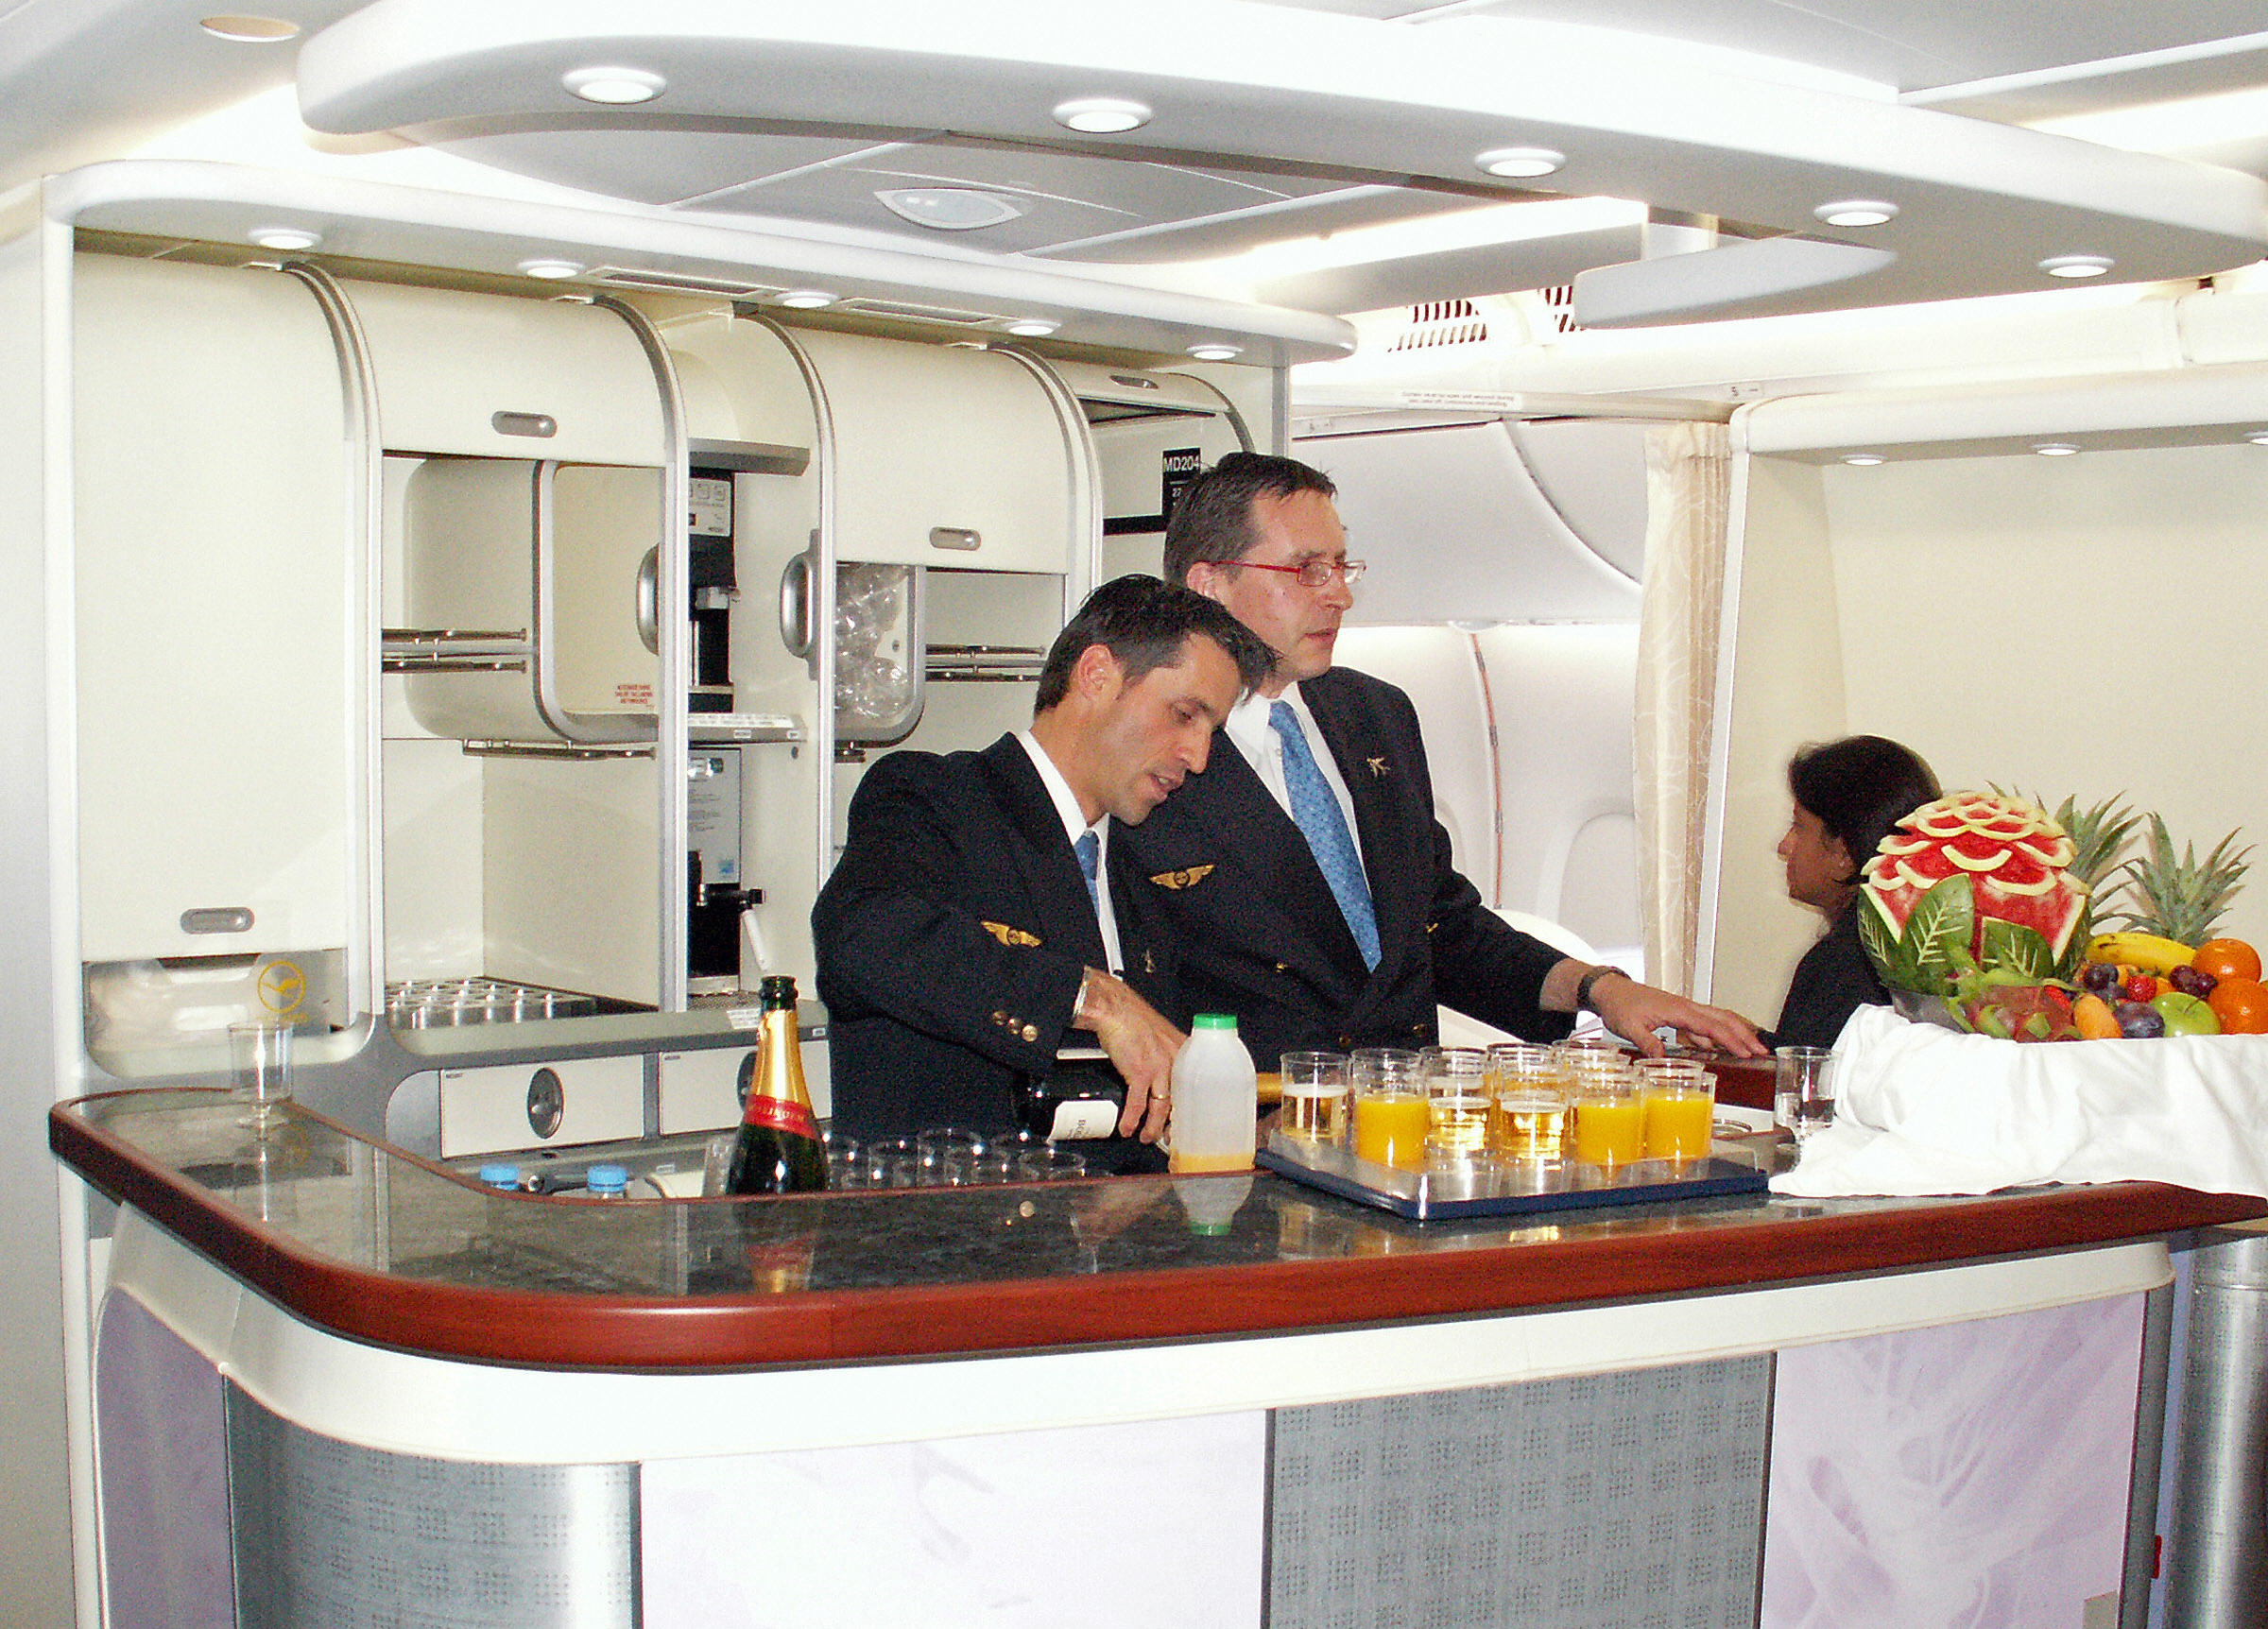 Stewards prepare drinks in the first class bar of Lufthansa aircraft.